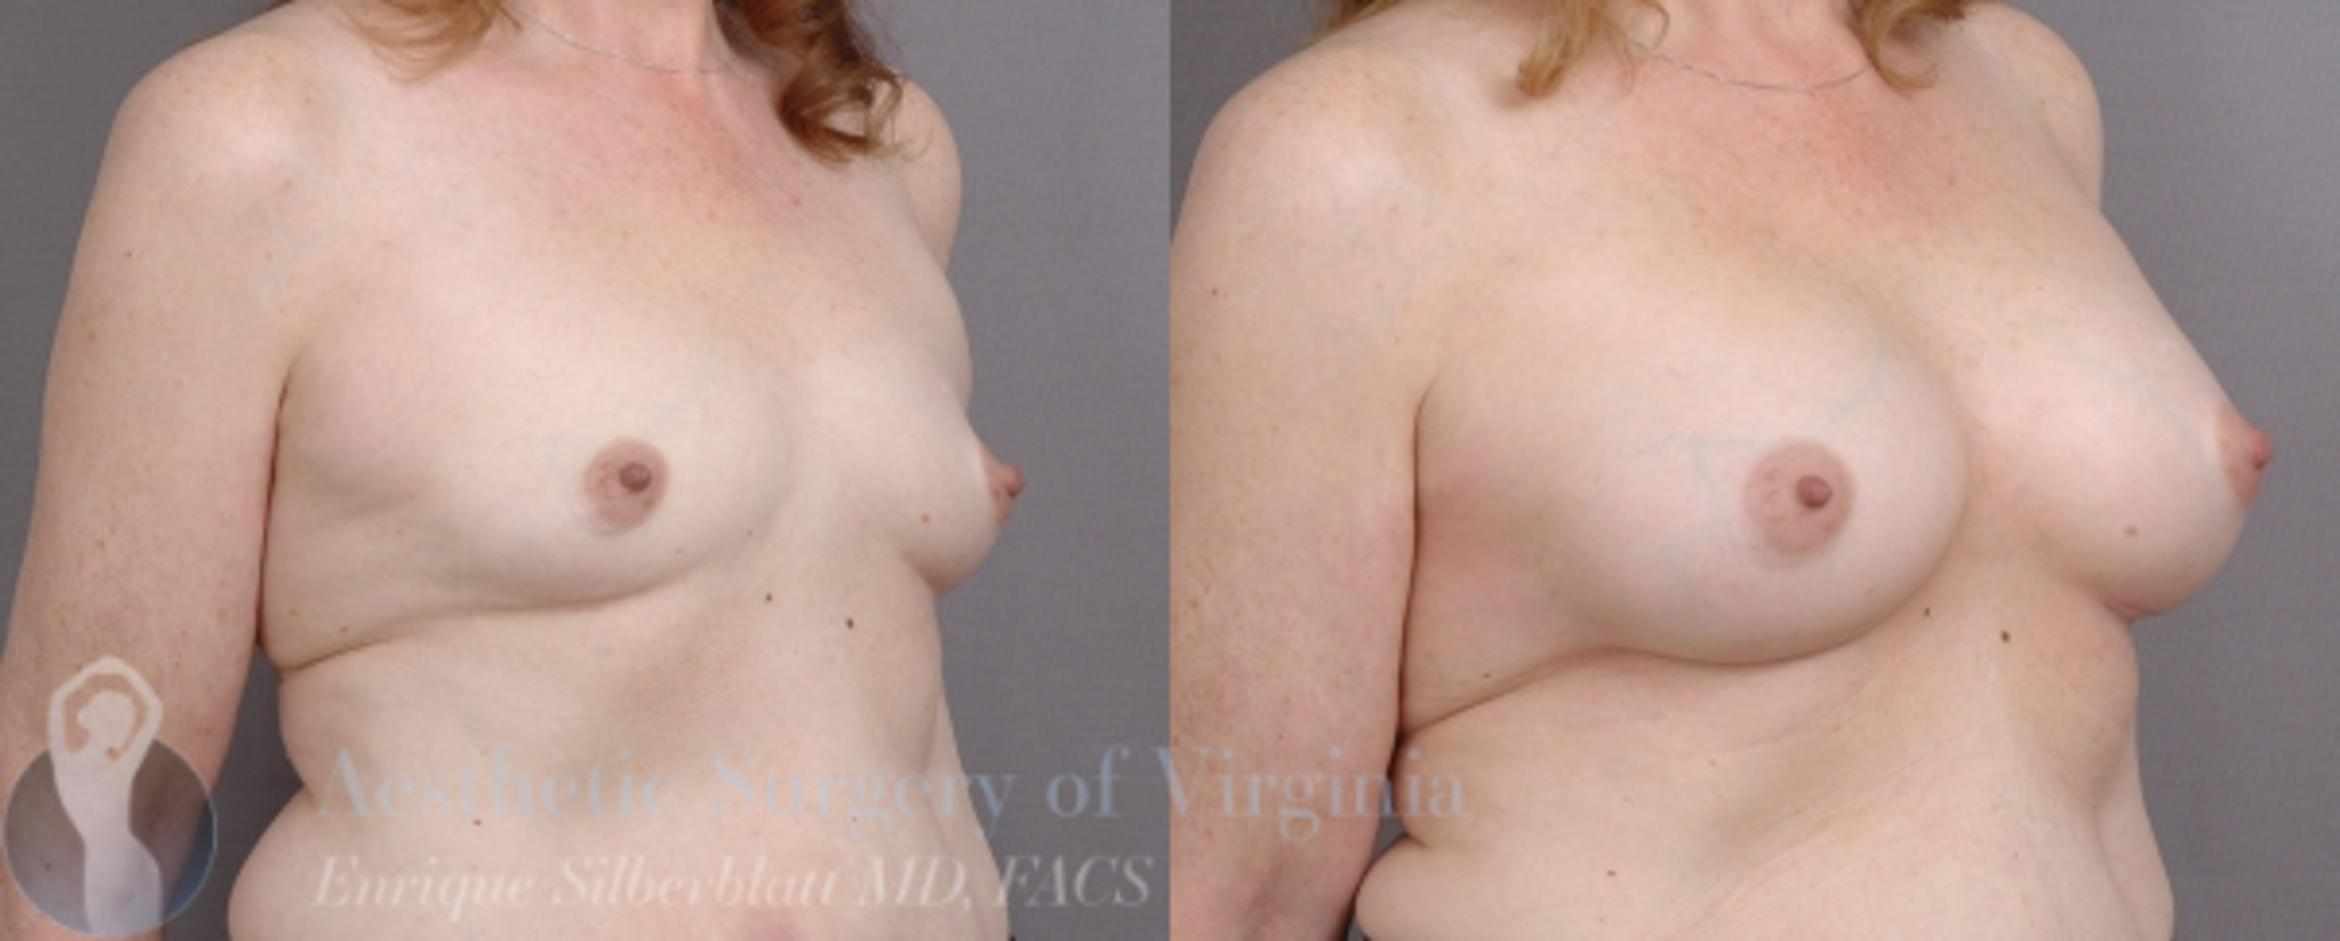 Breast Augmentation Case 16 Before & After View #3 | Roanoke, VA | Aesthetic Surgery of Virginia: Enrique Silberblatt, MD